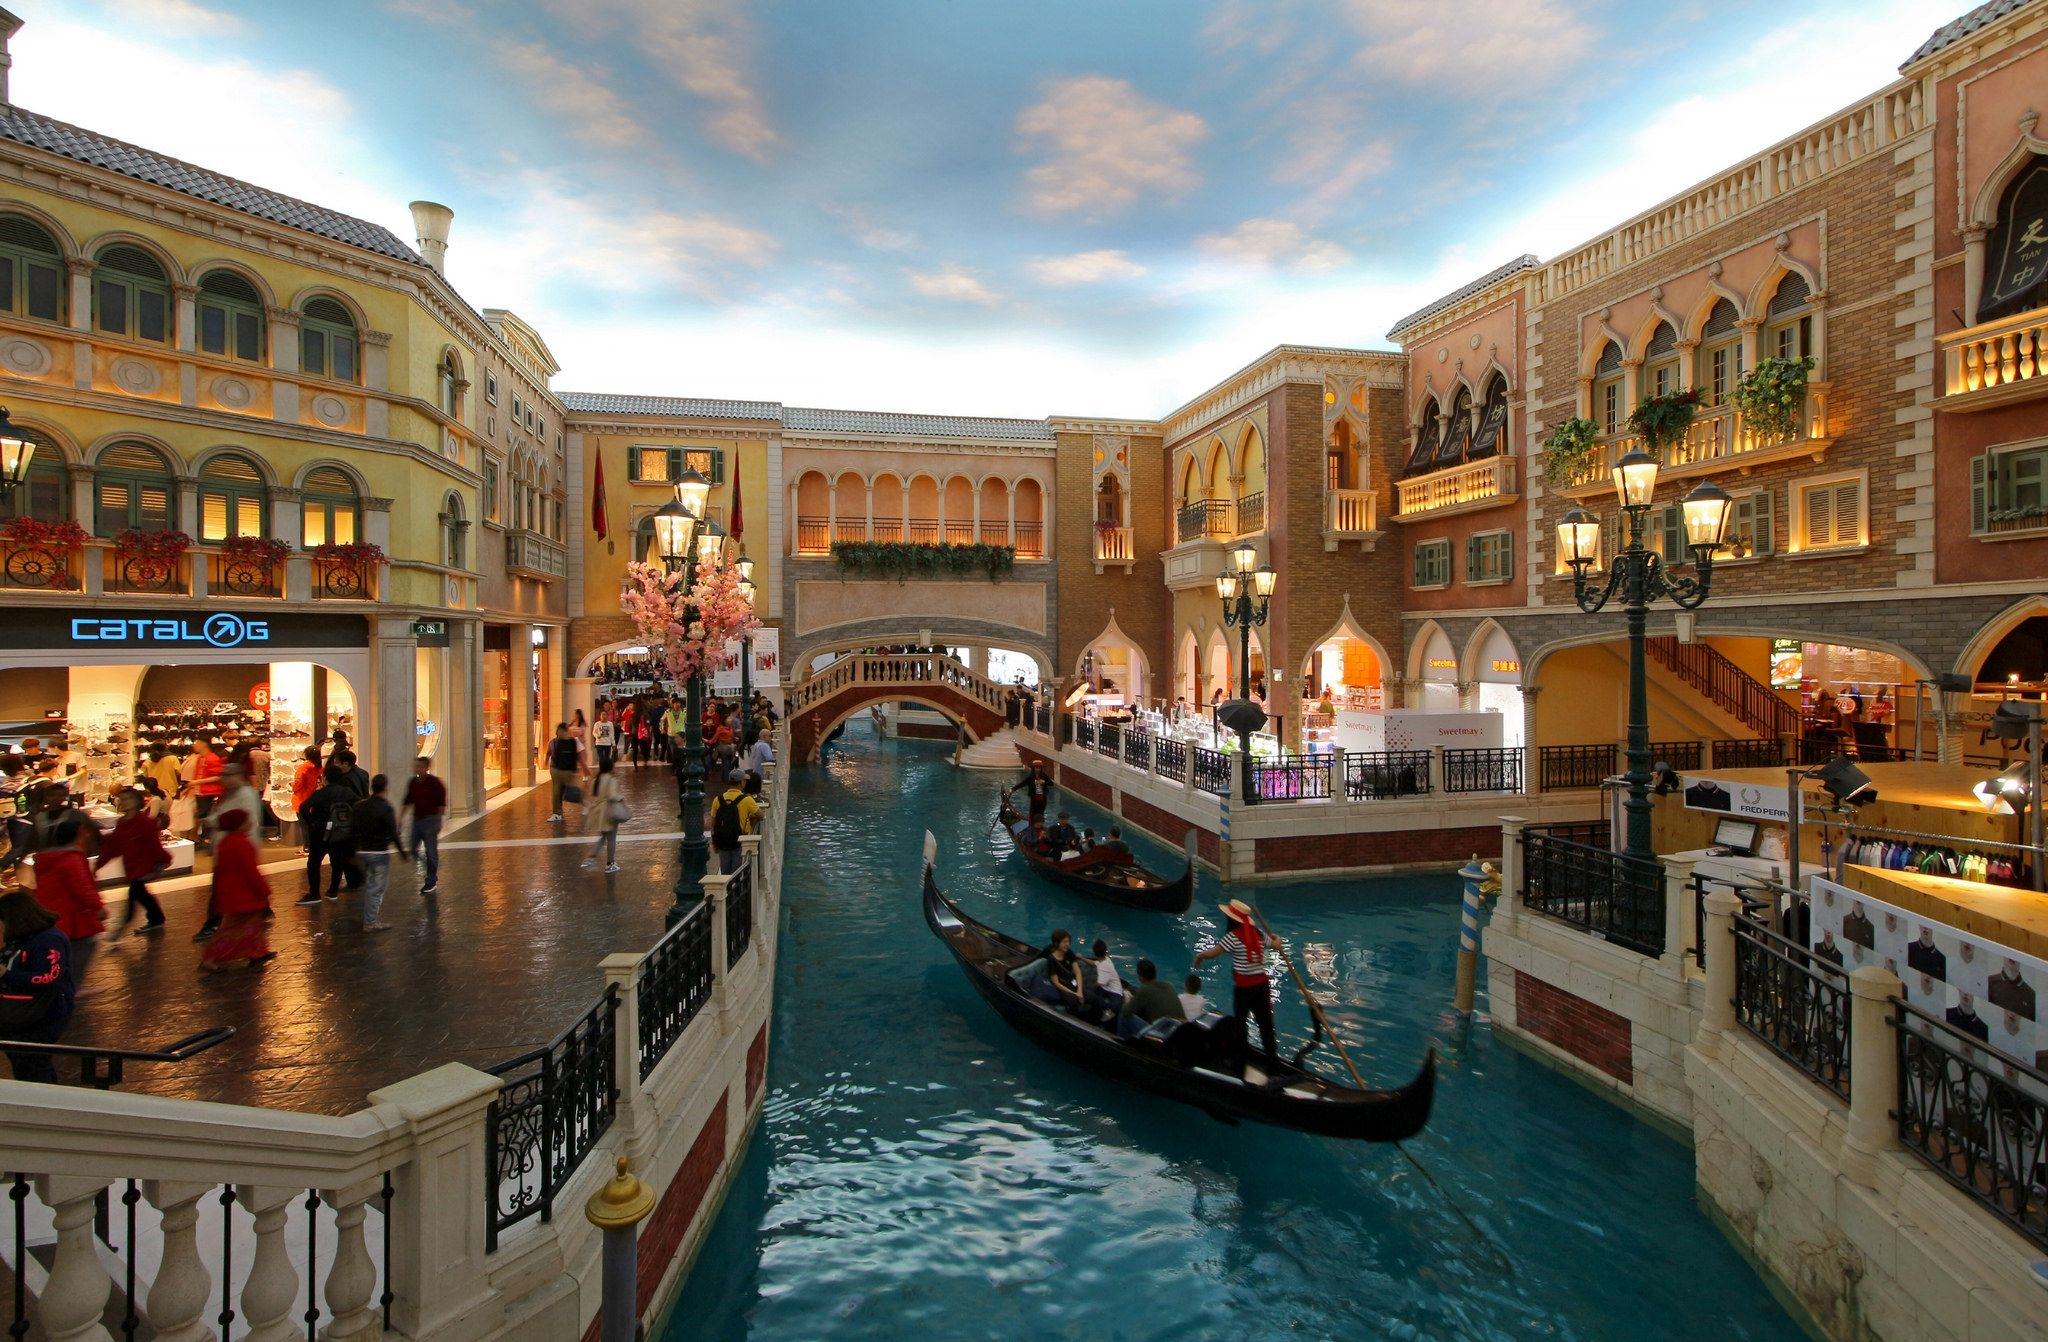 Grand canal shoppes the venetian macau a tiny fraction of the httpsflicps4z5im grand canal shoppes the venetian macau the grand canal shoppes inside the venetian hotel resort casino in macau china altavistaventures Images